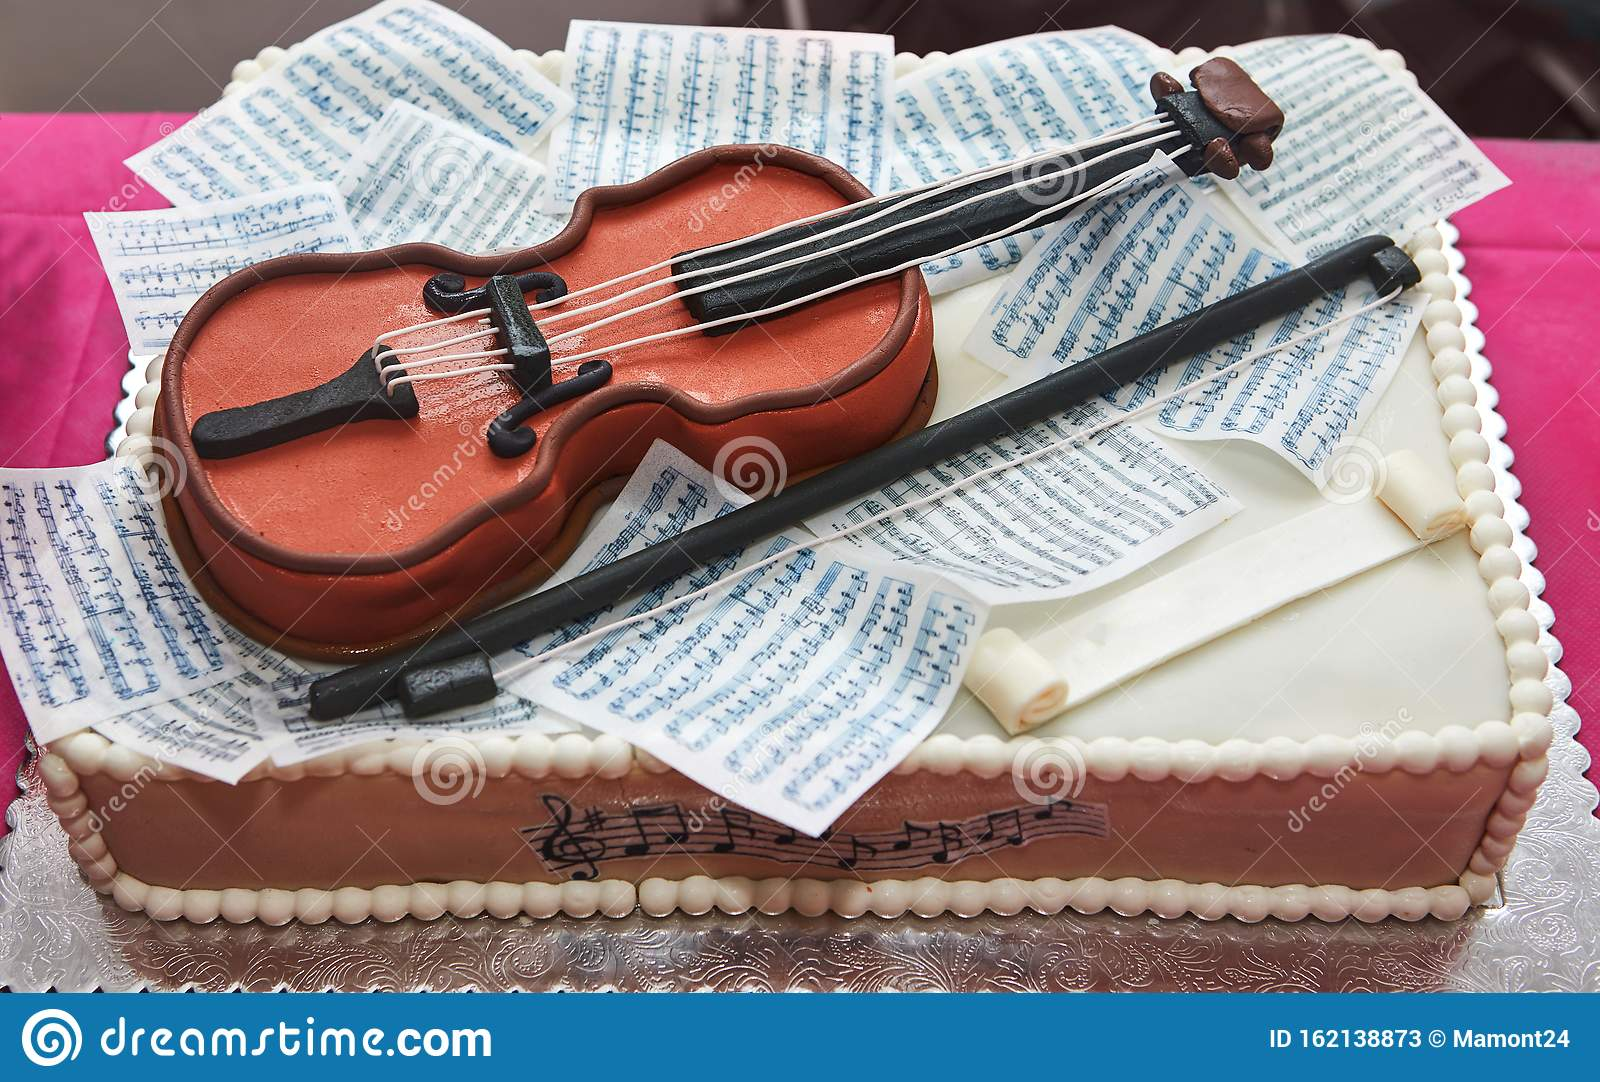 Prime Birthday Cake For A Girl With A Violin And Notes Musical Concept Funny Birthday Cards Online Alyptdamsfinfo